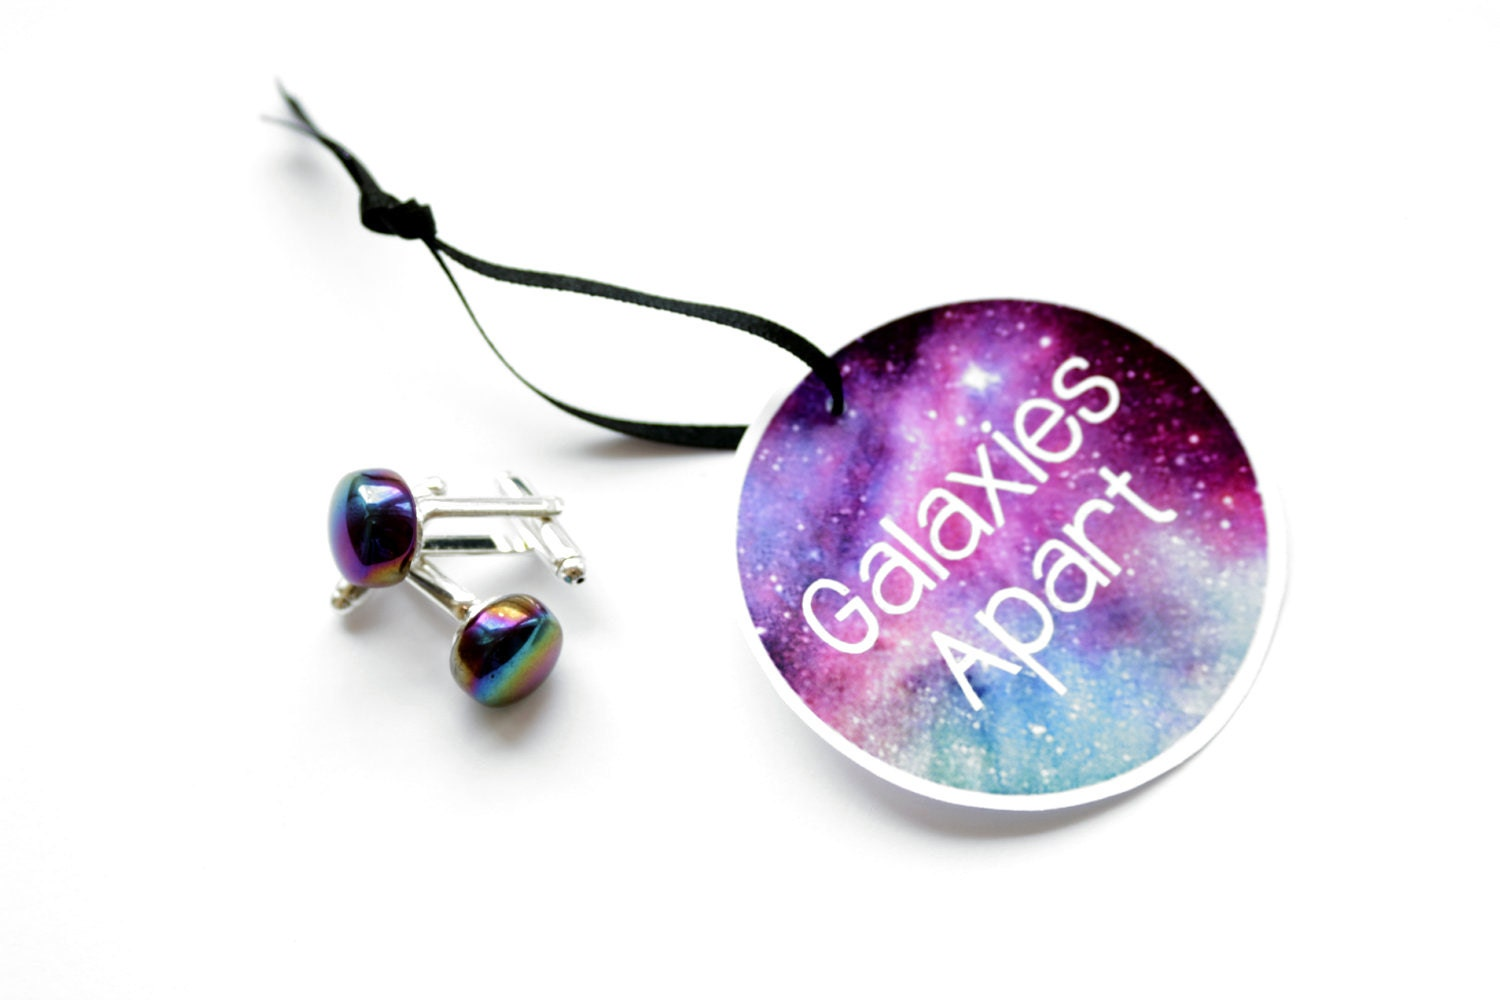 Circular 'galaxies apart' cufflinks